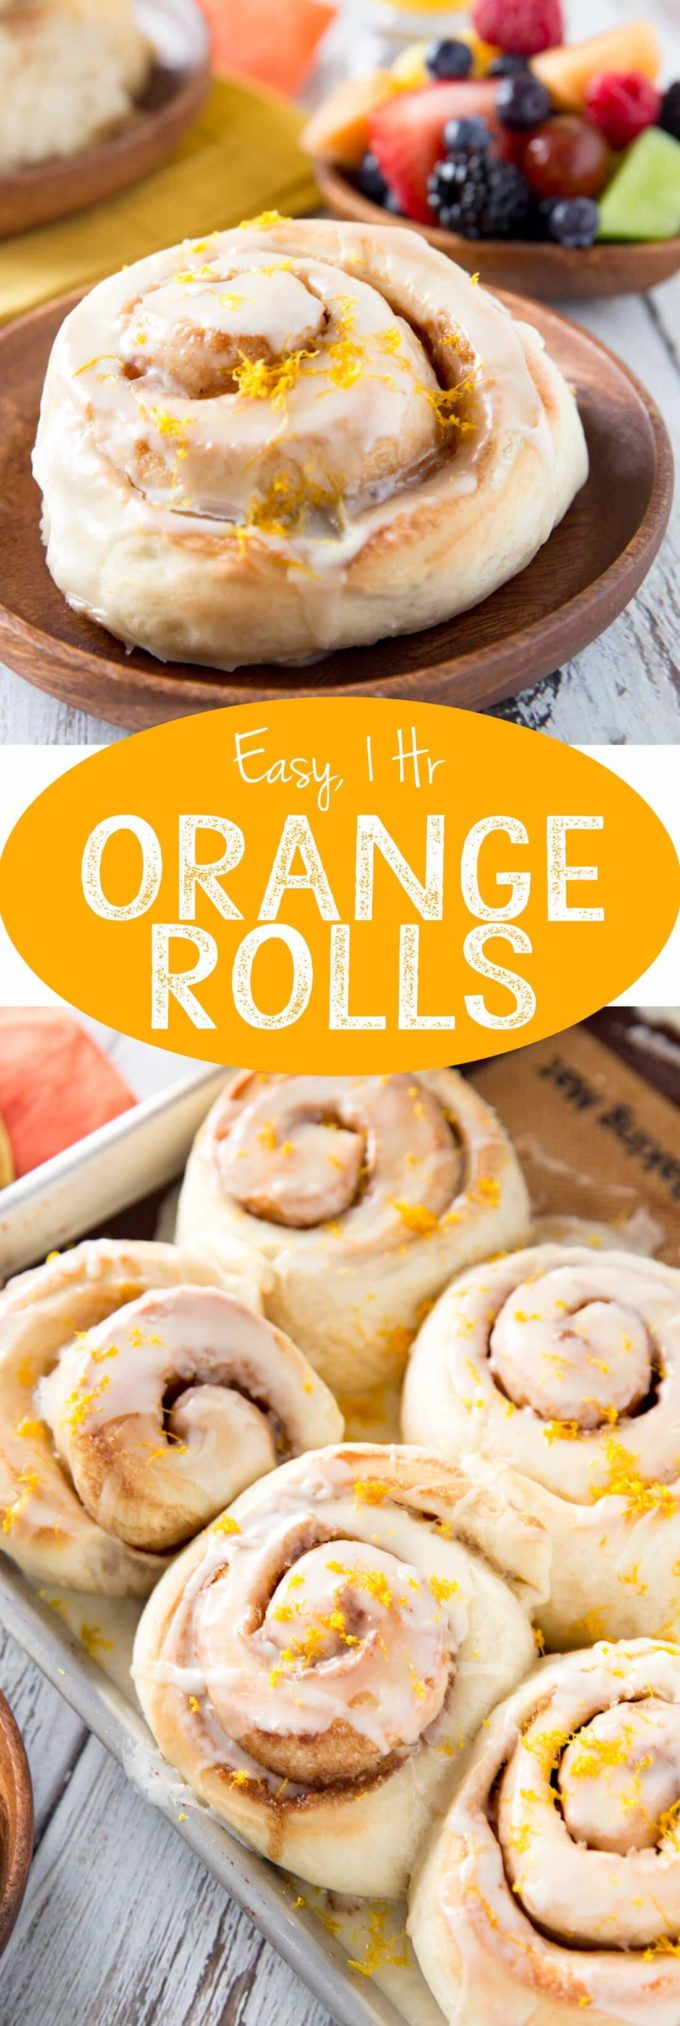 Sweet Orange Rolls with a delicious glaze. These disappear so fast at our house.